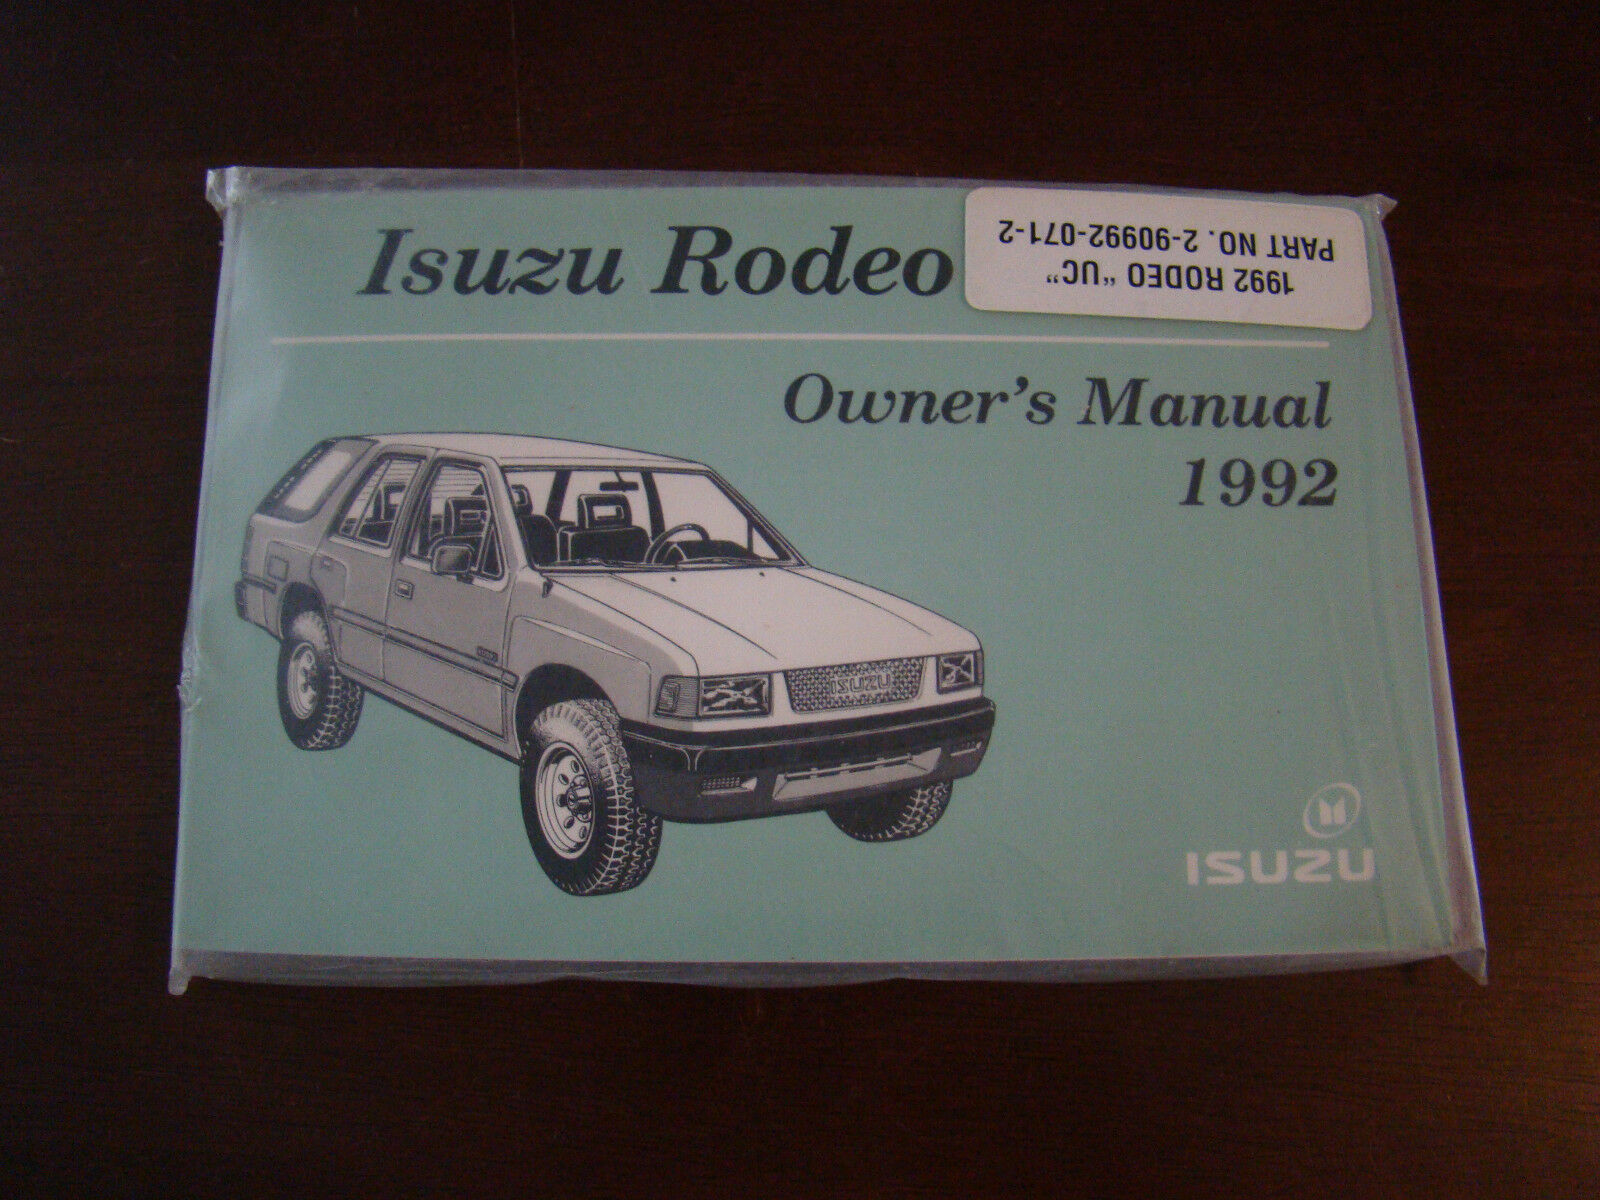 1992 Isuzu Rodeo Owners Manual 31751 1 of 1Only 1 available ...